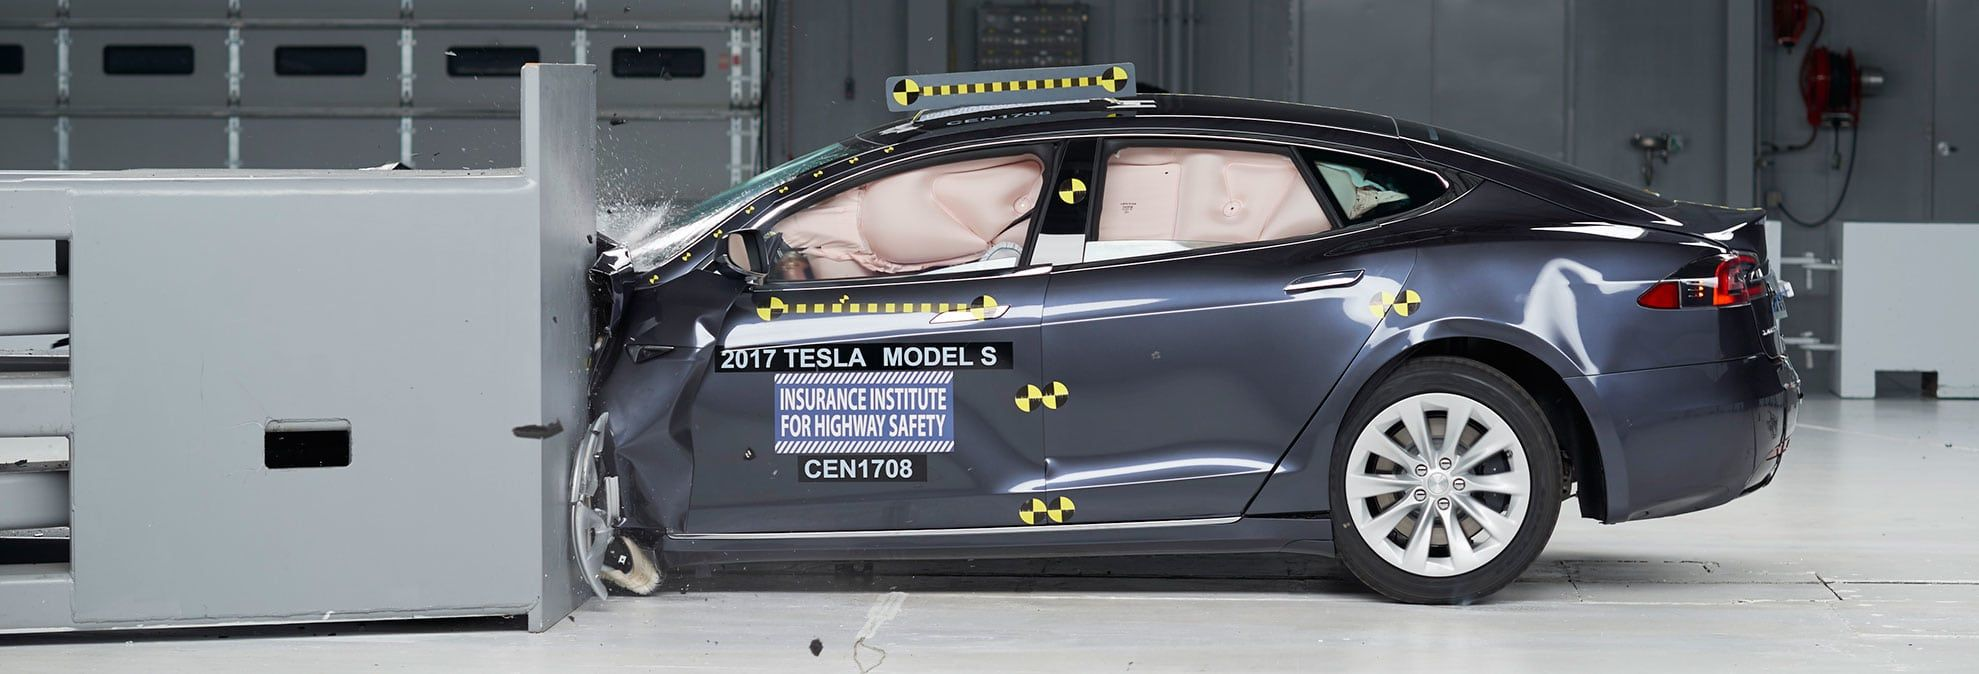 Lincoln Mercedes And Toyota Sedans Earn Top Crash Safety Marks